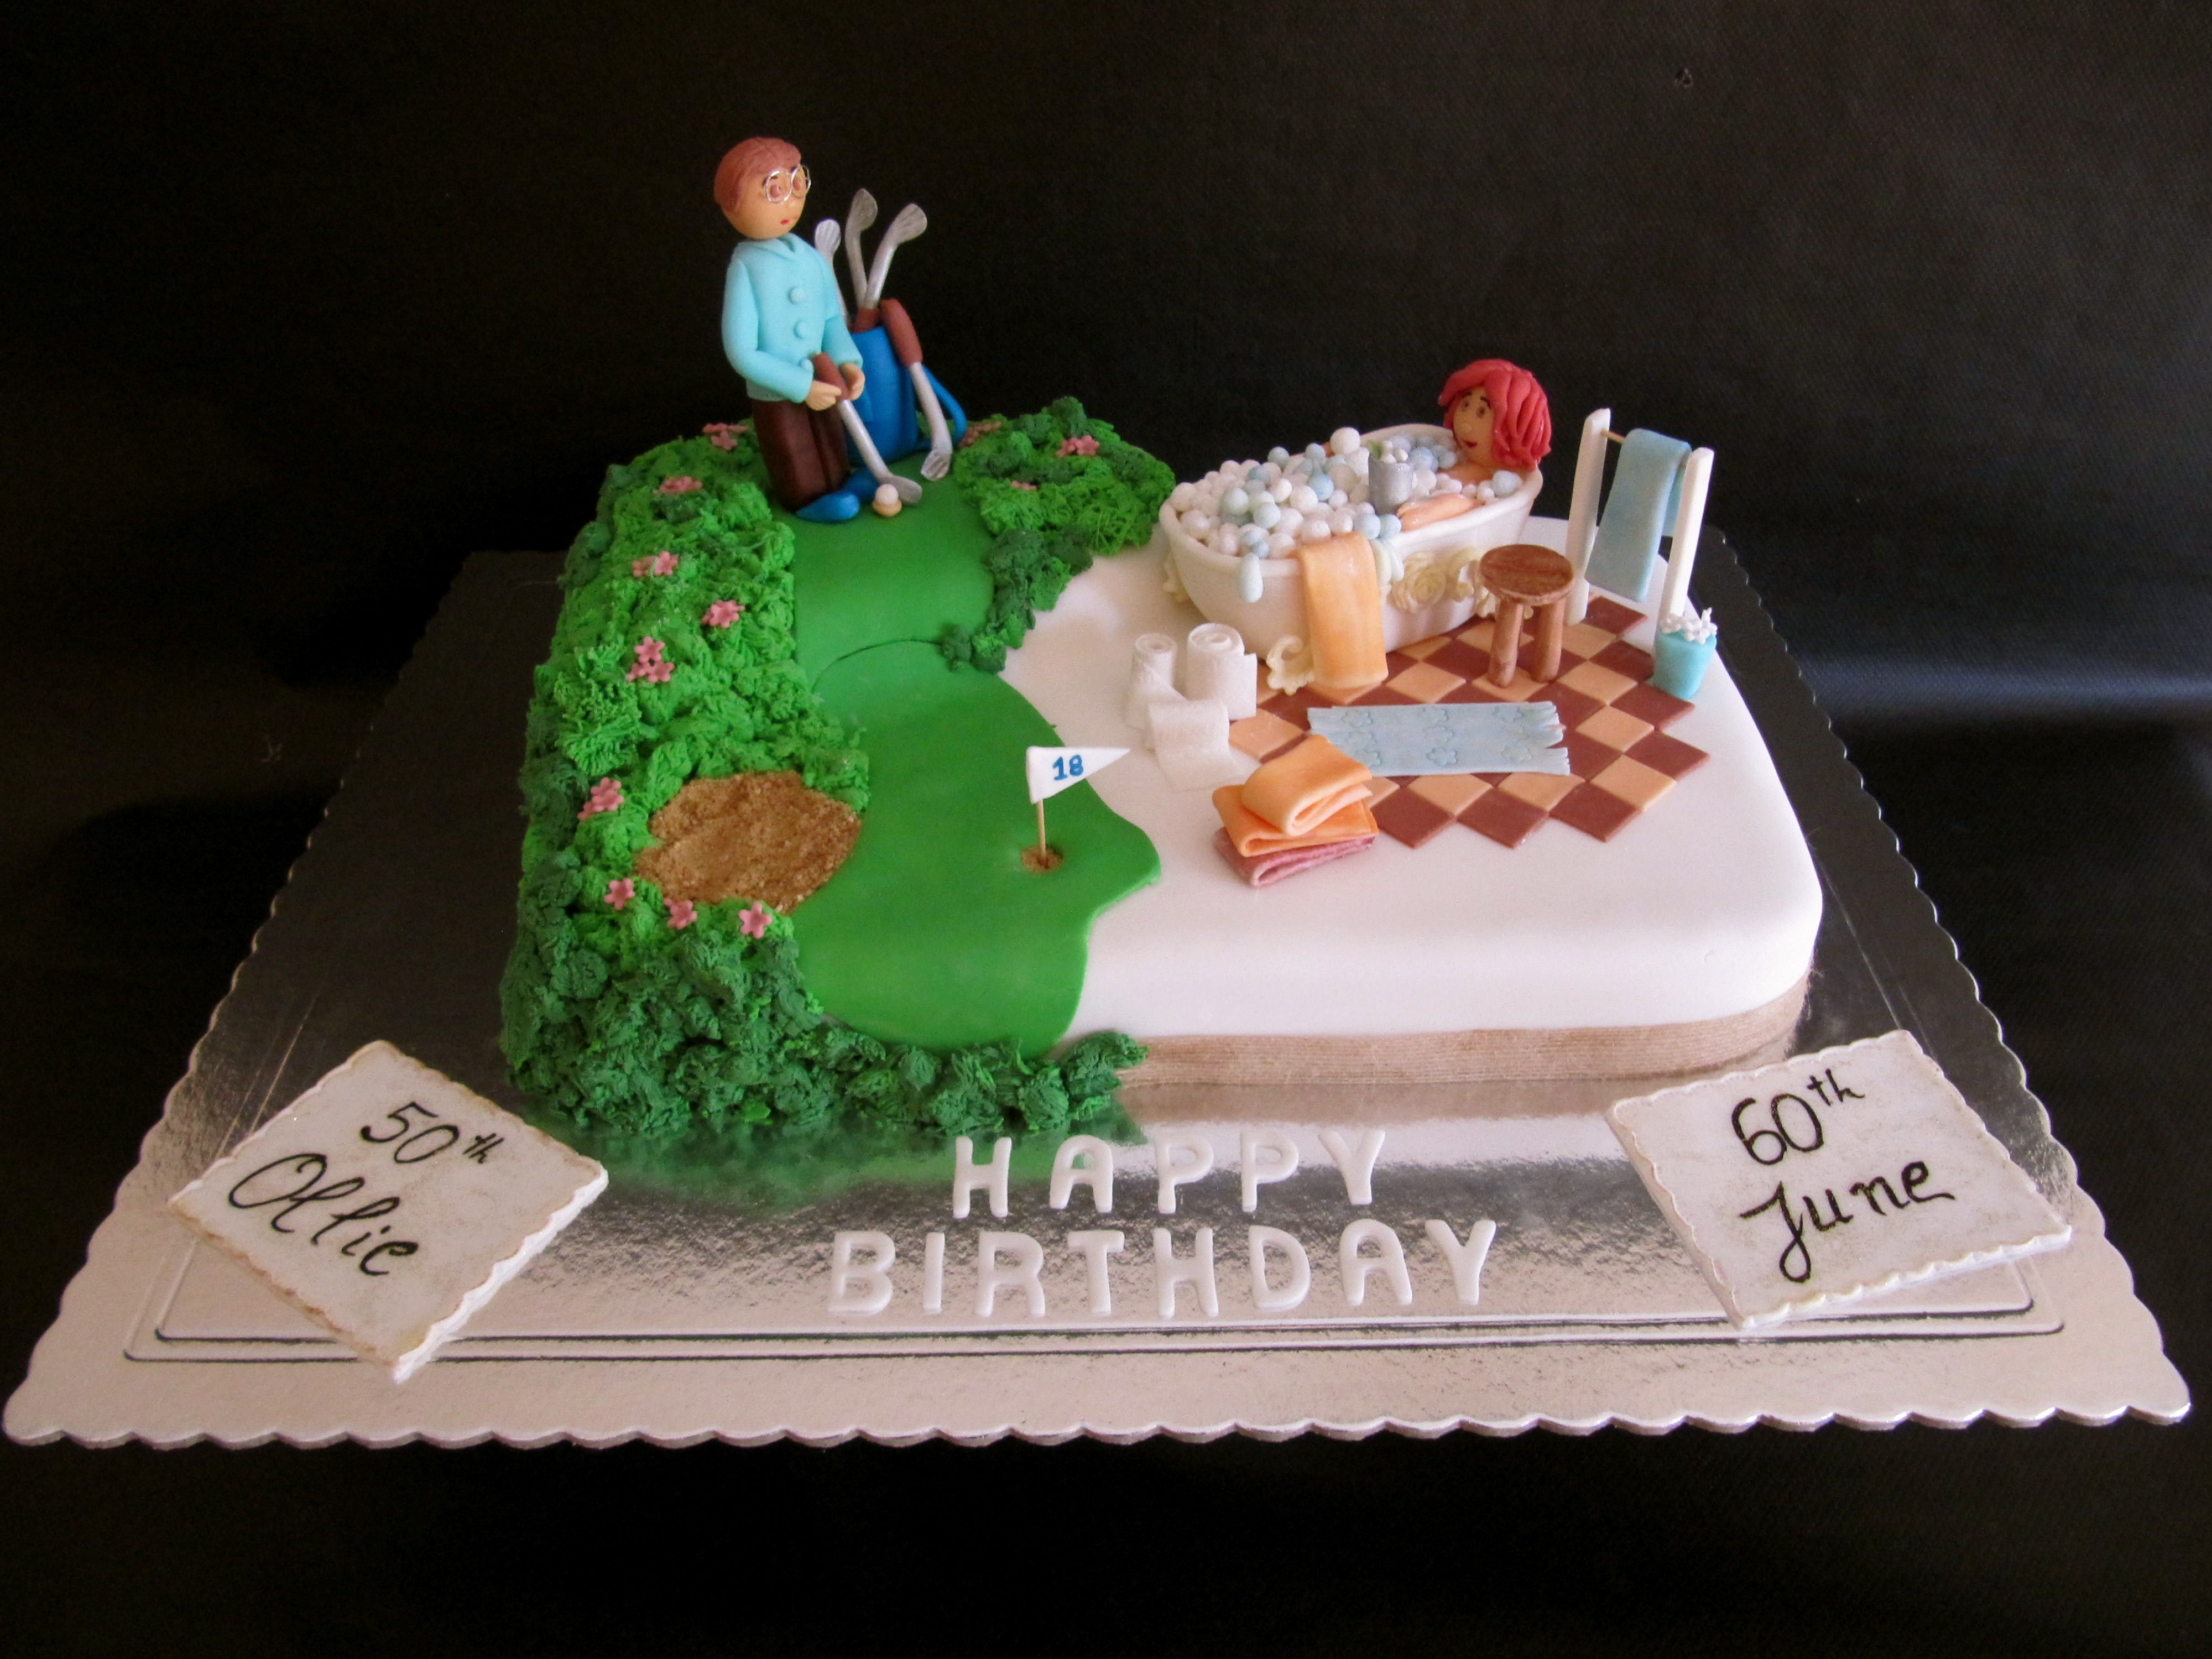 algarve cakes birthday cake for 2 people all handmade and edible